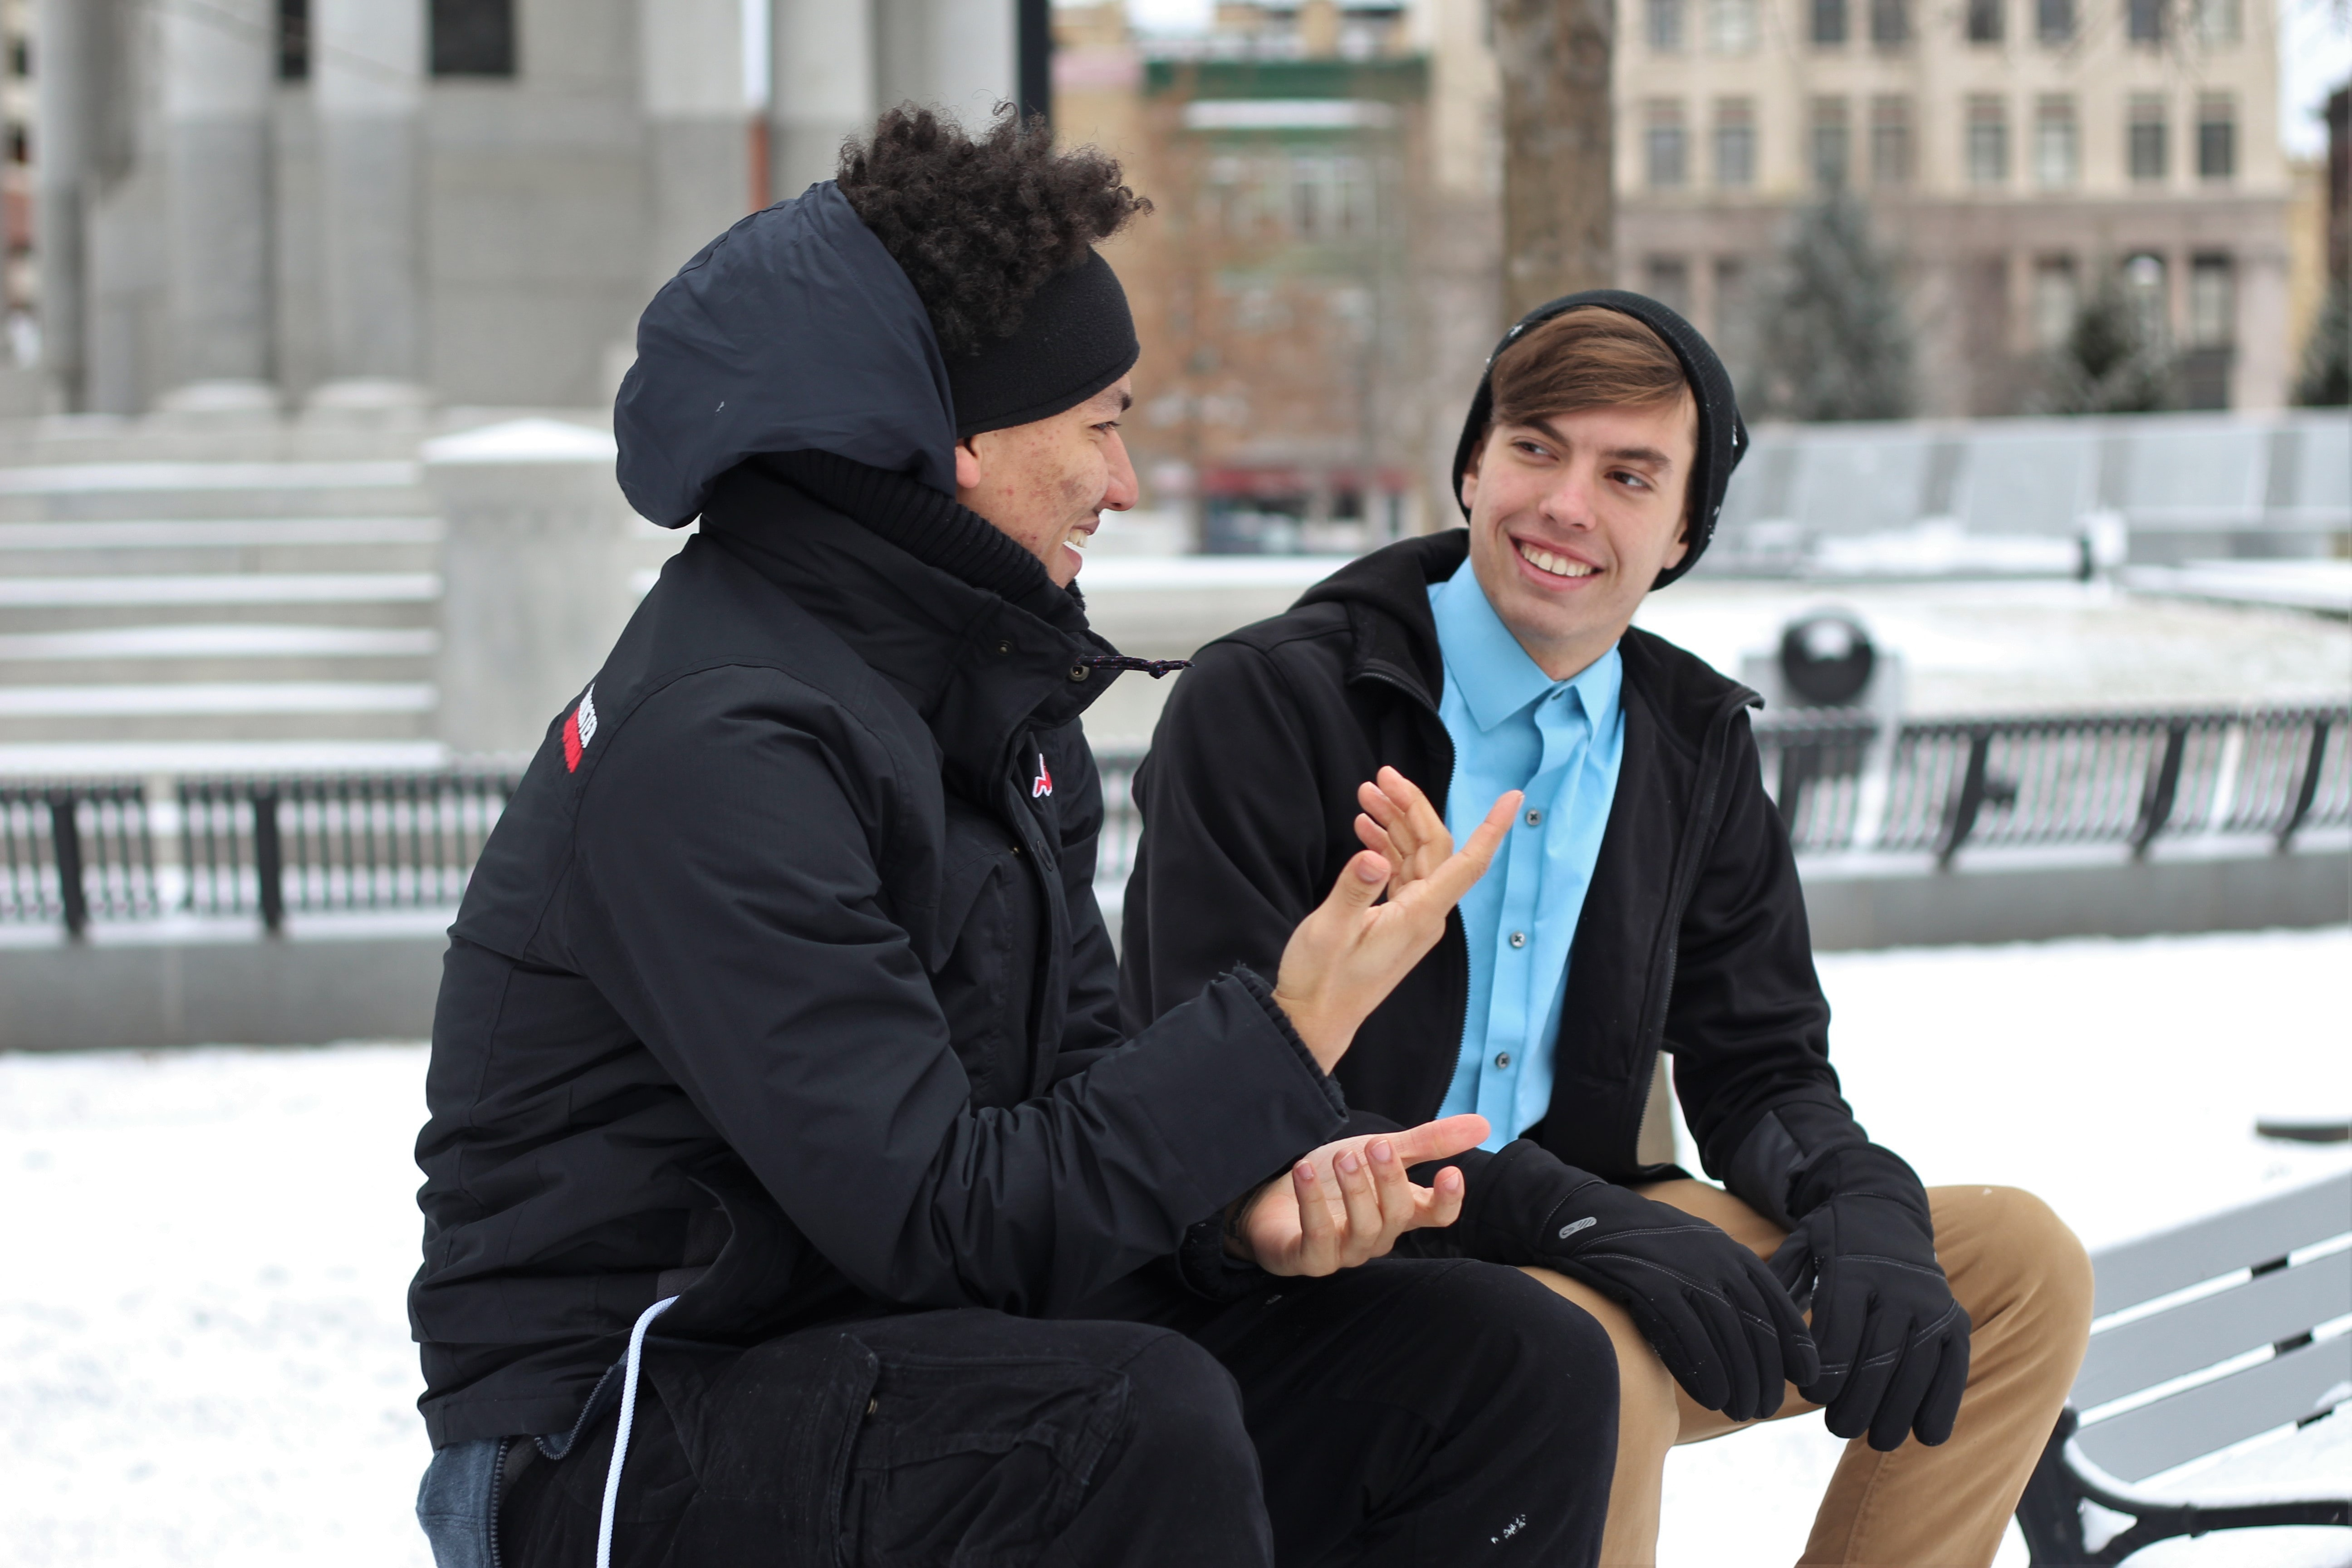 Two guys talking to each other while sitting on a bench in a snowy park in Scranton